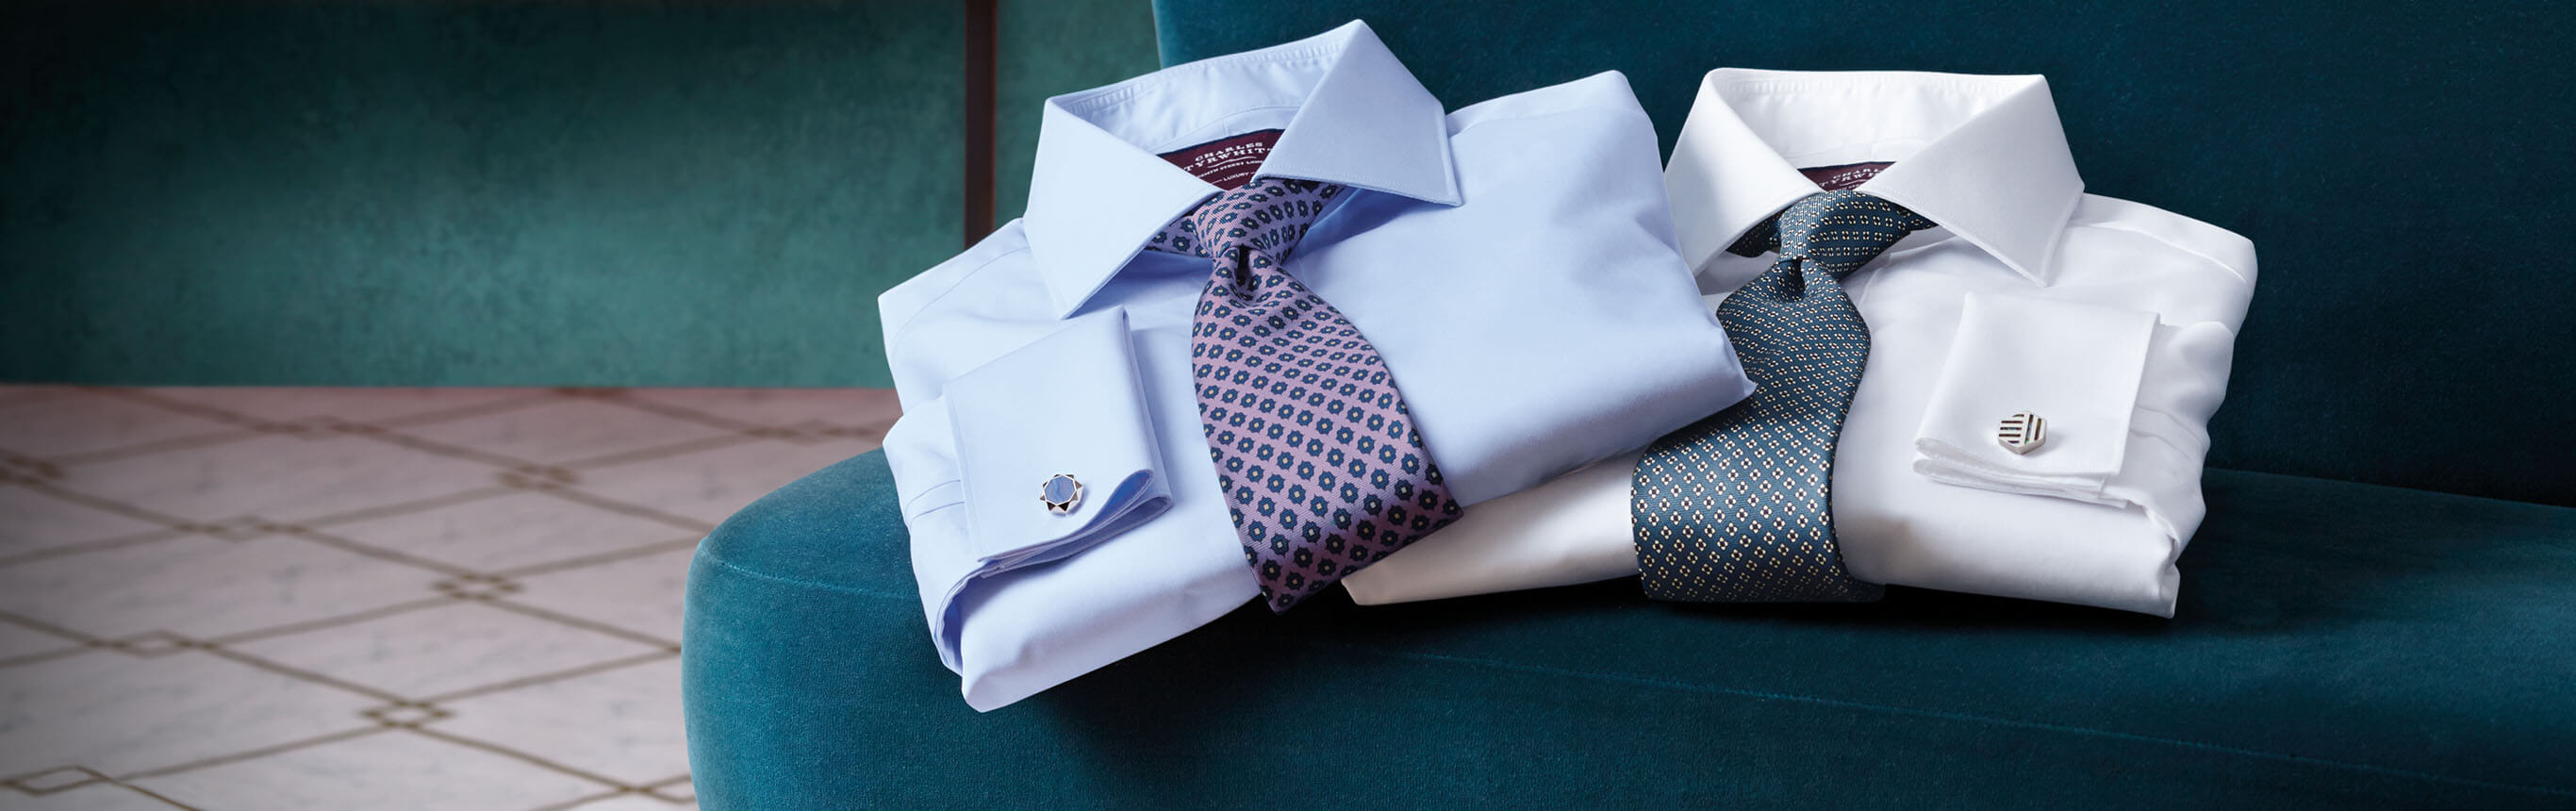 Image of stack of twill shirts